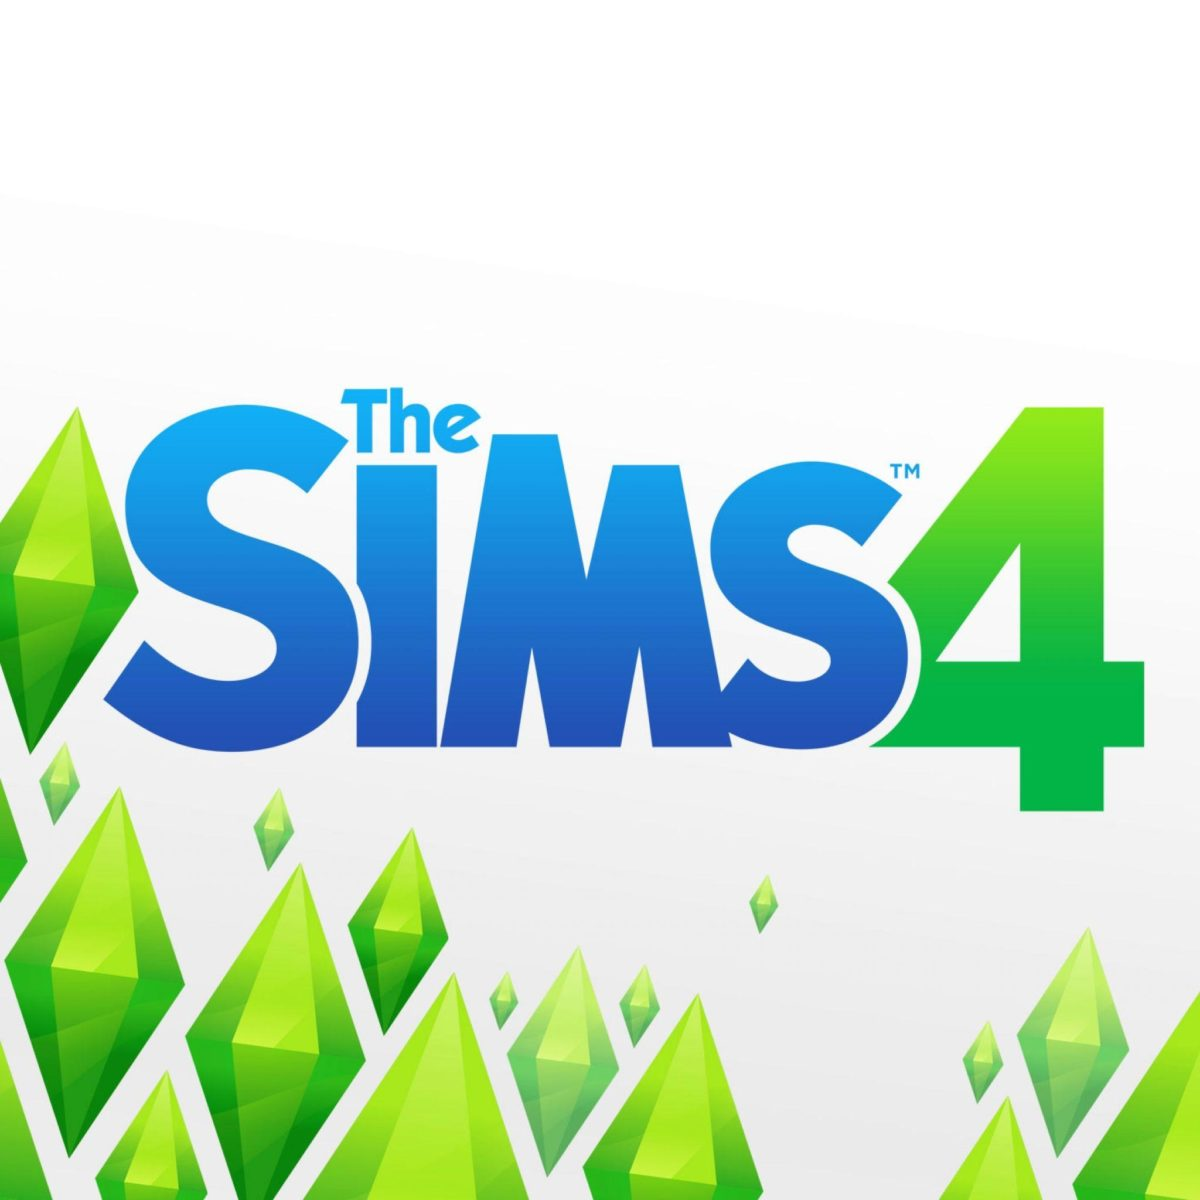 Download Wallpaper 2048×2048 The sims 4, Maxis software, 2014, Pc …